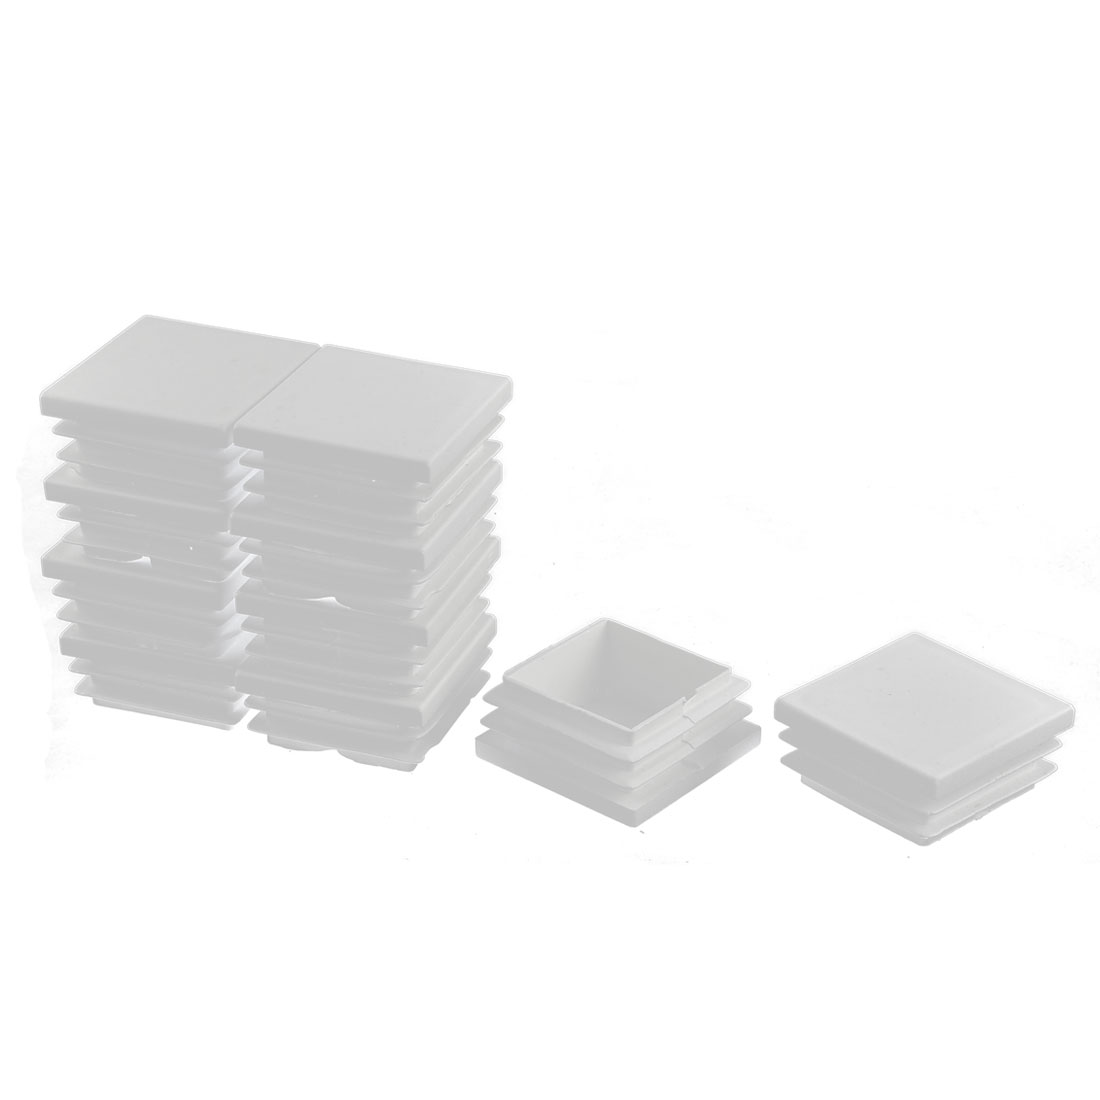 Plastic Square Tube Pipe Inserts End Blanking Caps White 40mmx40mm 10 Pcs